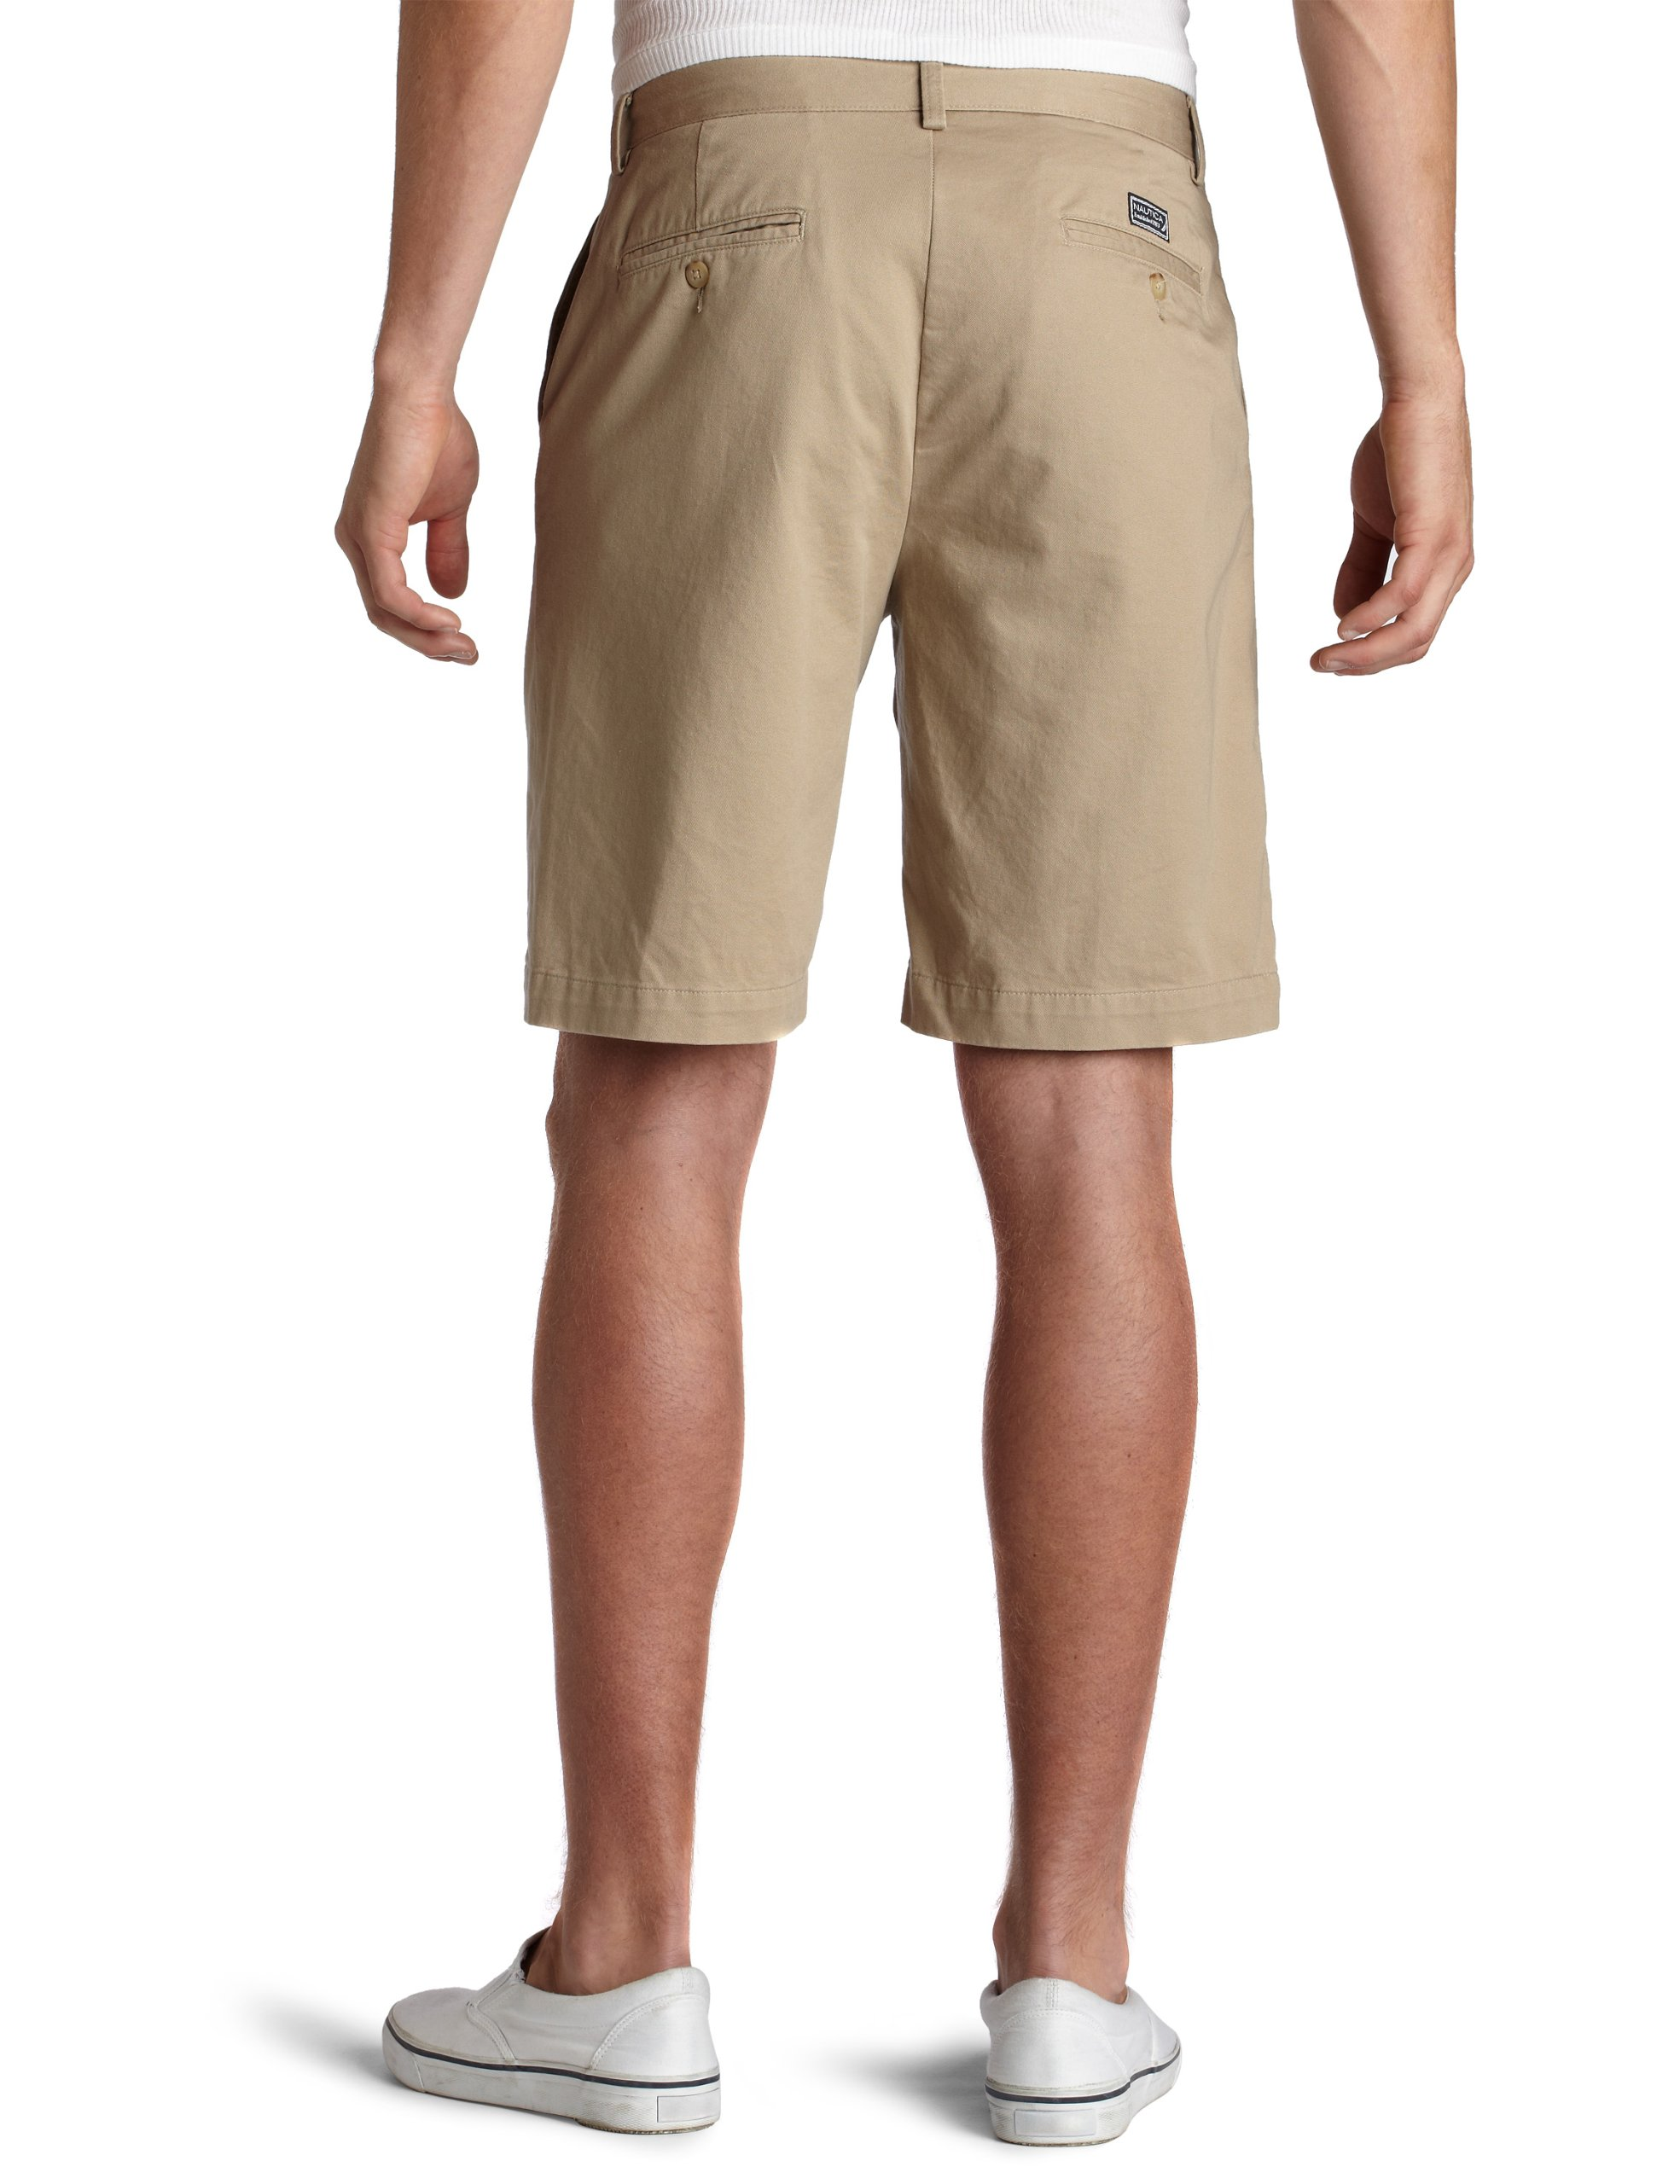 Nautica Men's Twill Flat Front Short,True Khaki,33 by Nautica (Image #2)